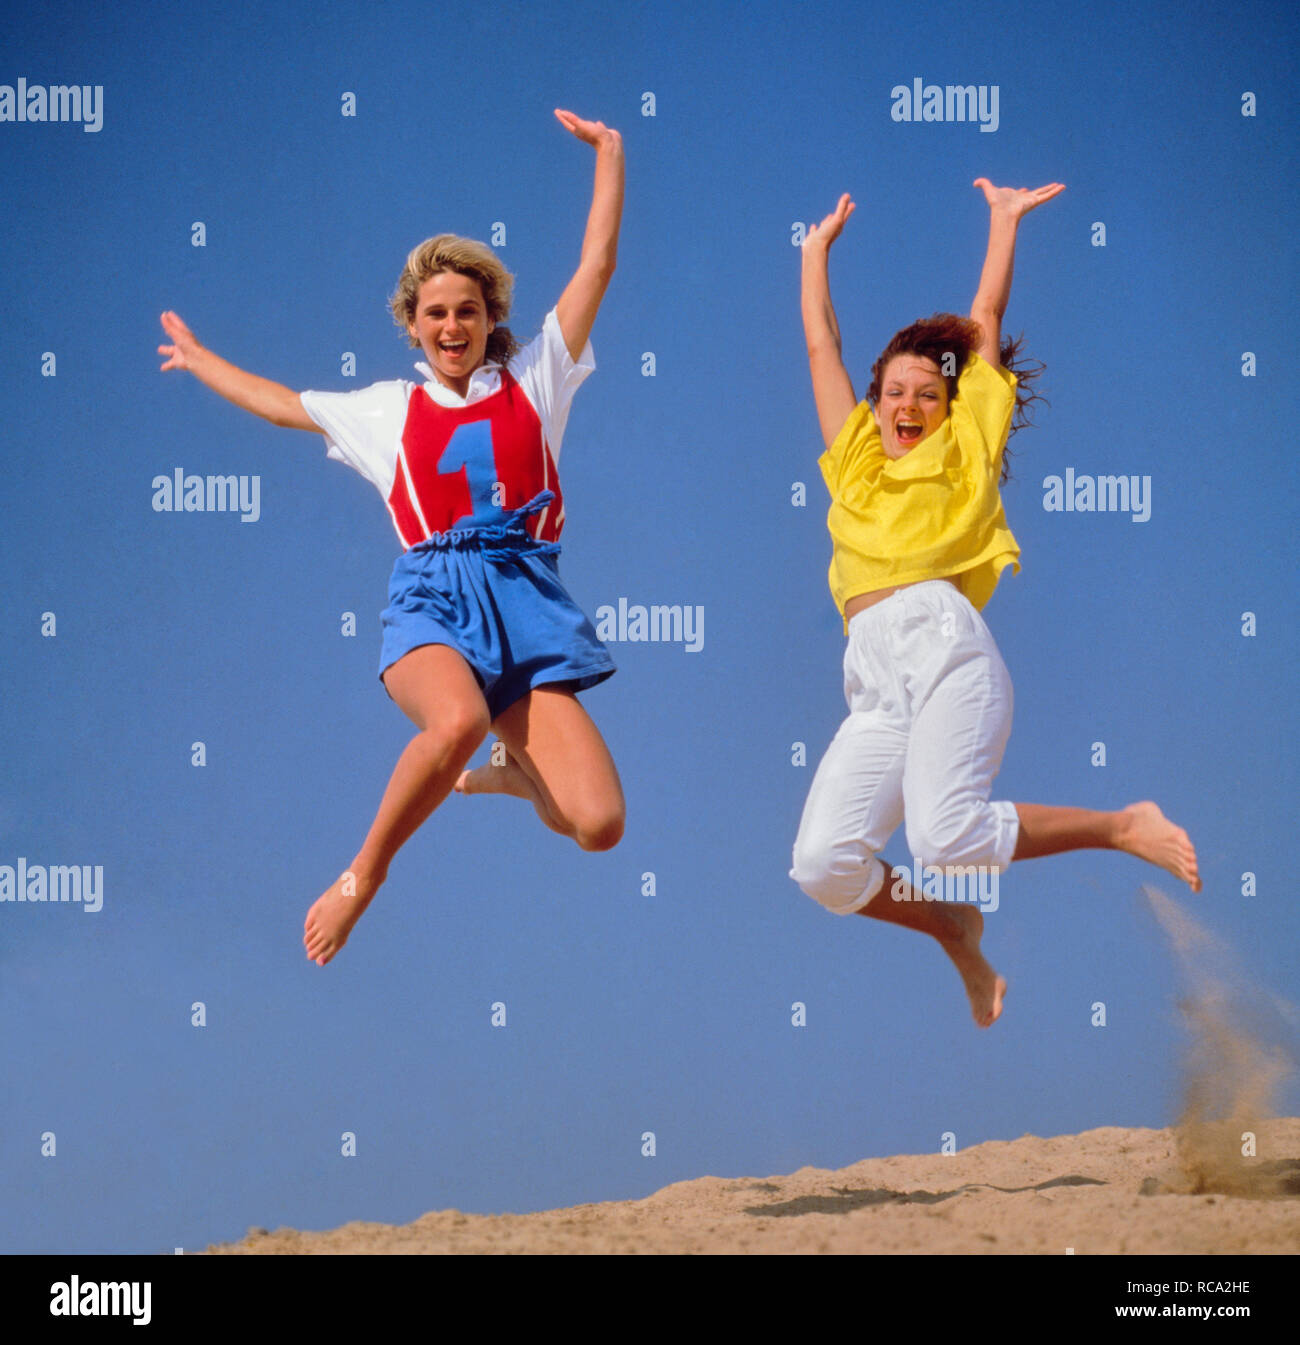 zwei junge Frauen machen Luftsprung   two young women jumping in the air *** Local Caption *** Modelrelease vorhanden   model release available - Stock Image